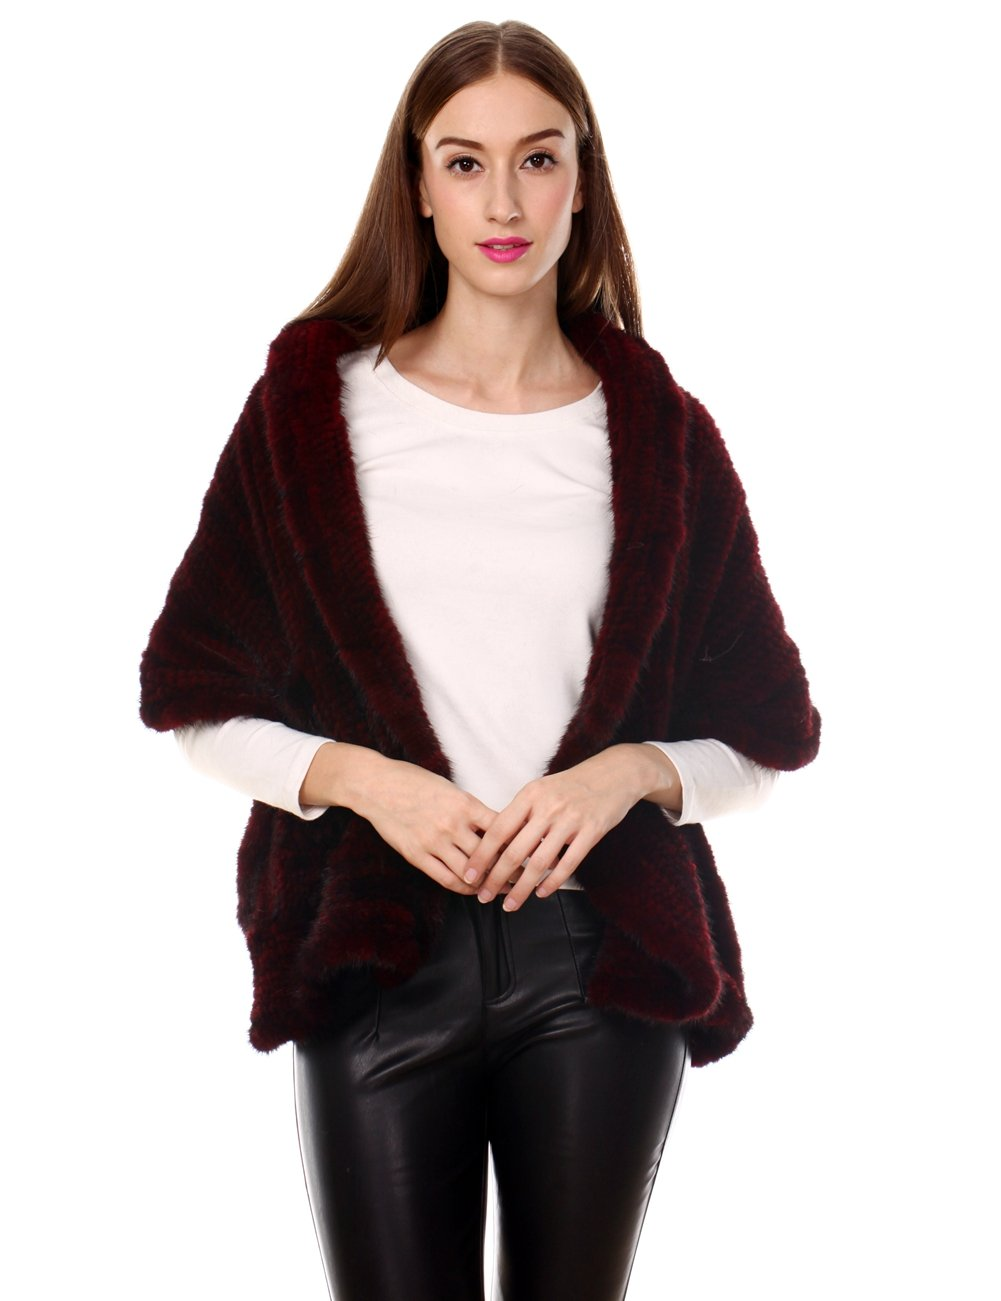 Ferand Knitted Real Mink Fur Ruffled Shawl Stole with 2 Pockets for Women, Burgundy